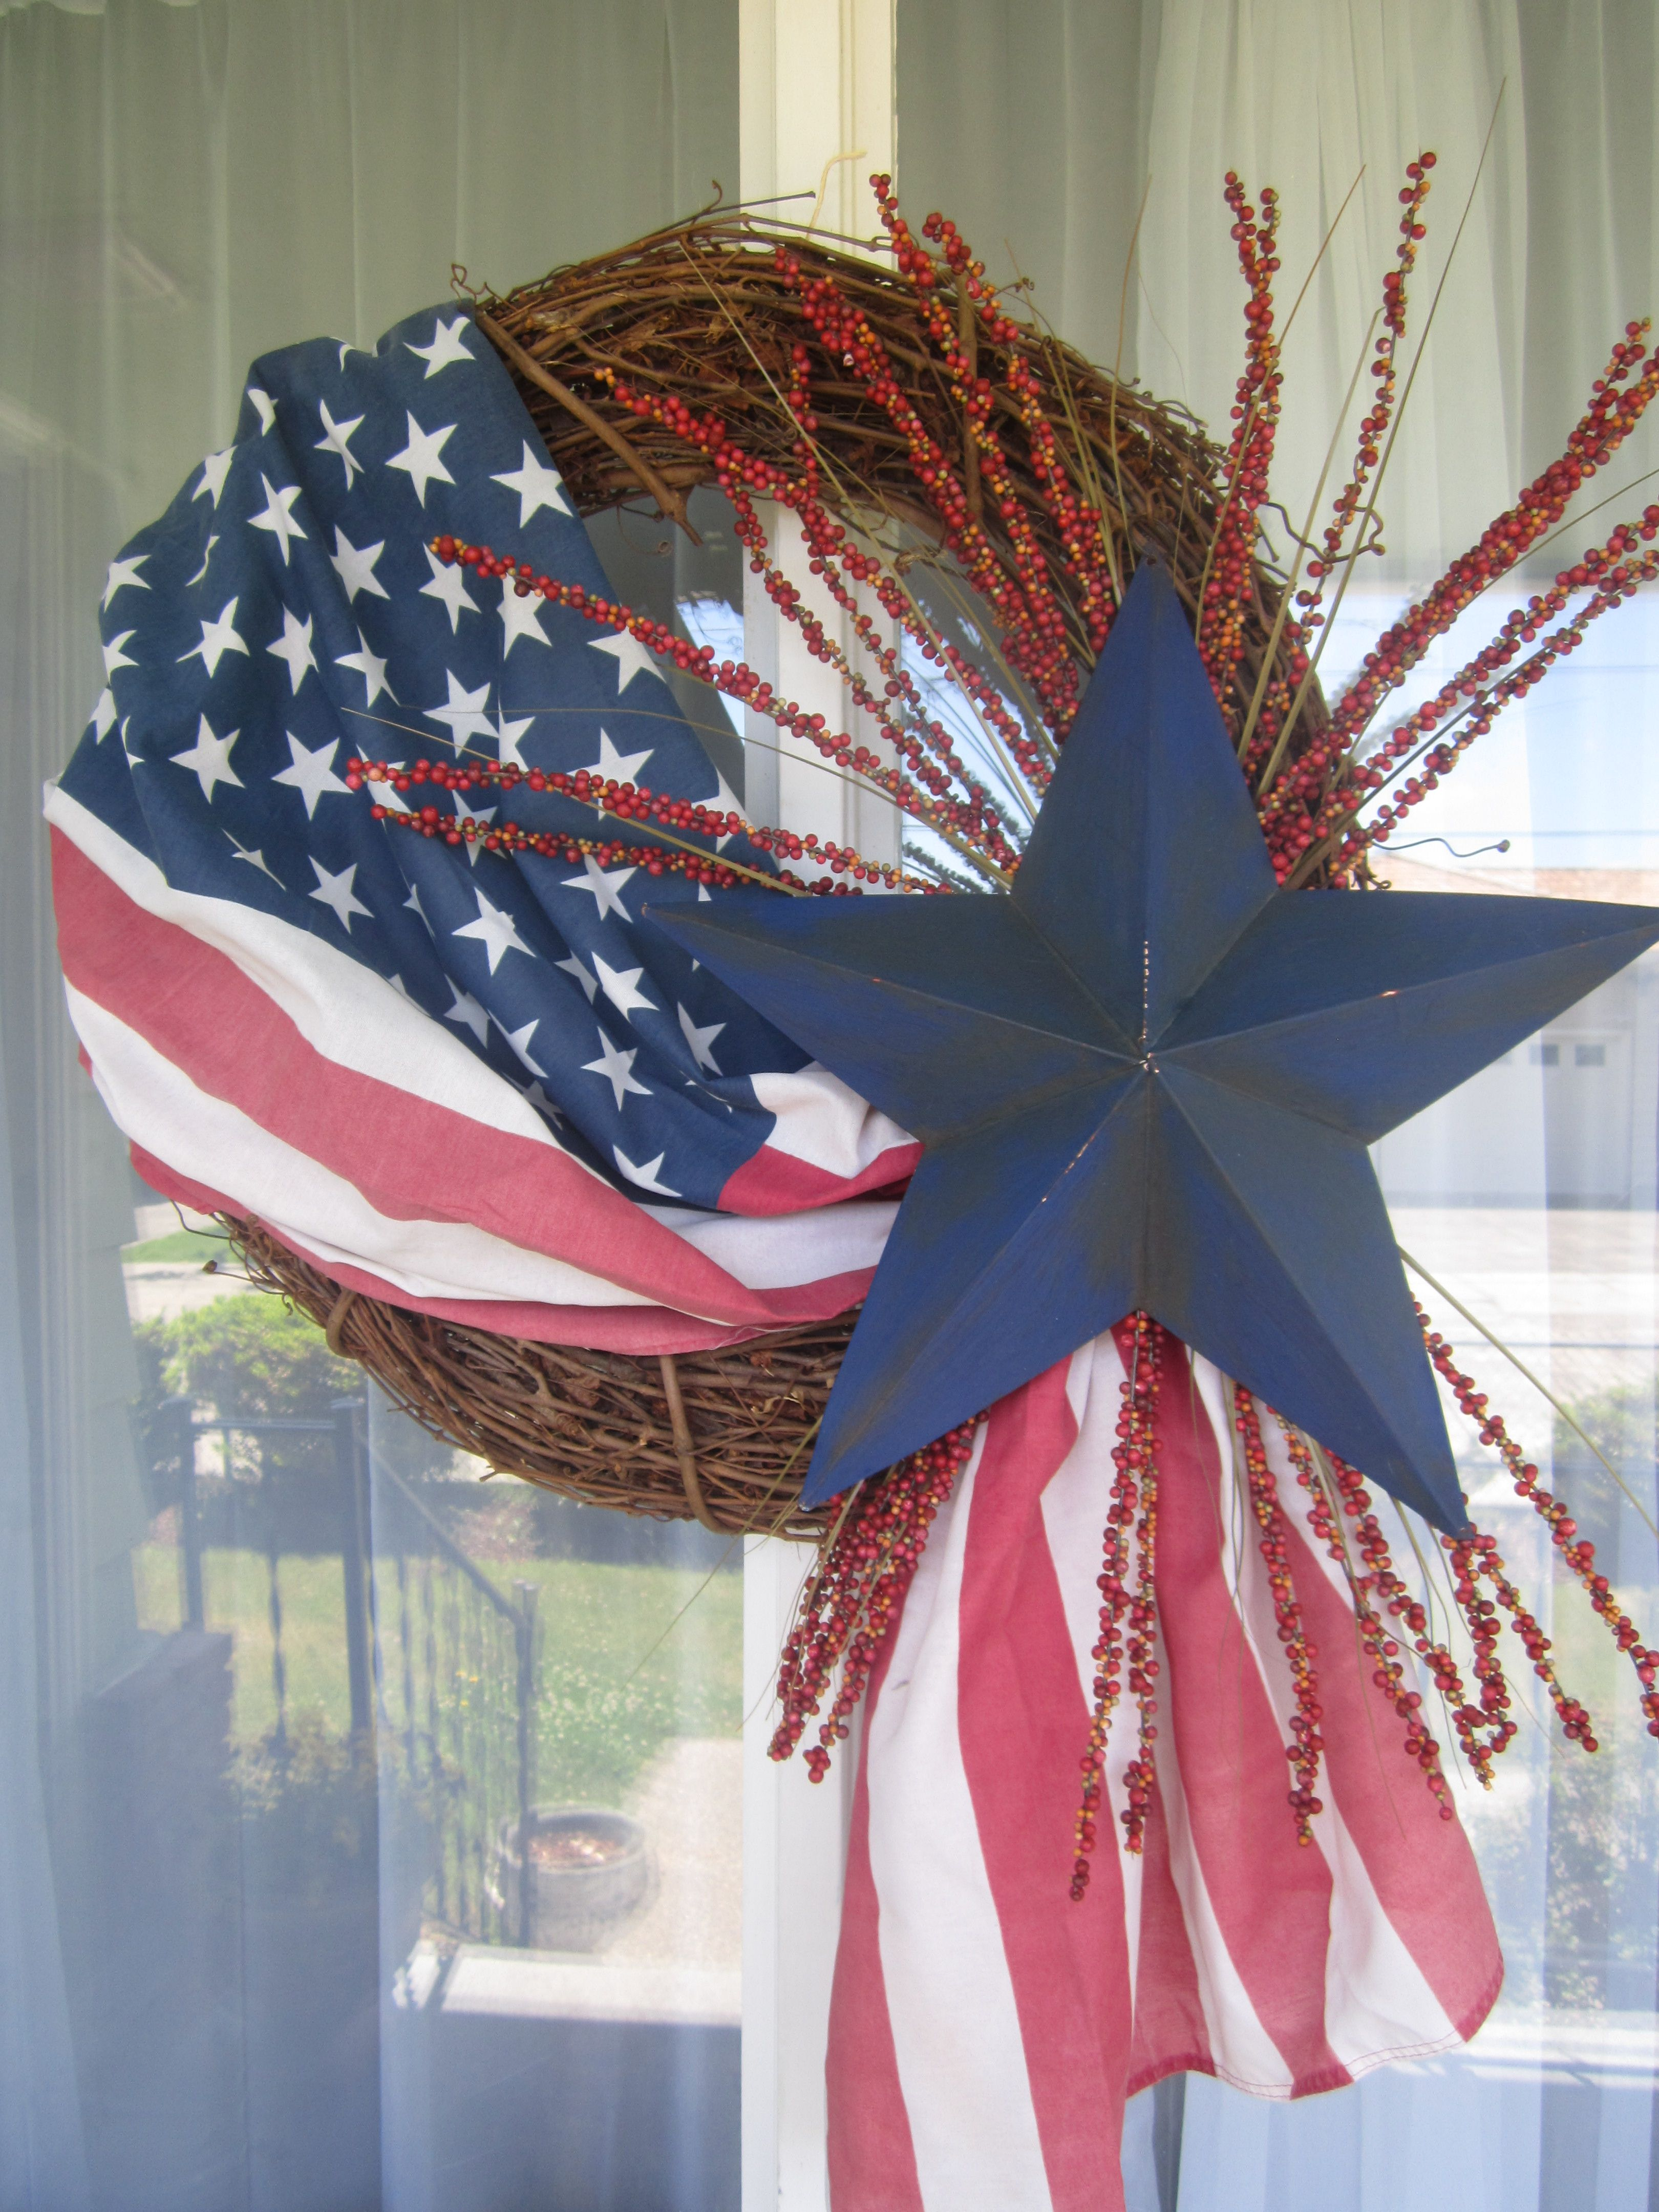 4th Of July Wreath Details Valthecraftygal Blogspot Com Fourth Of July Decor 4th Of July